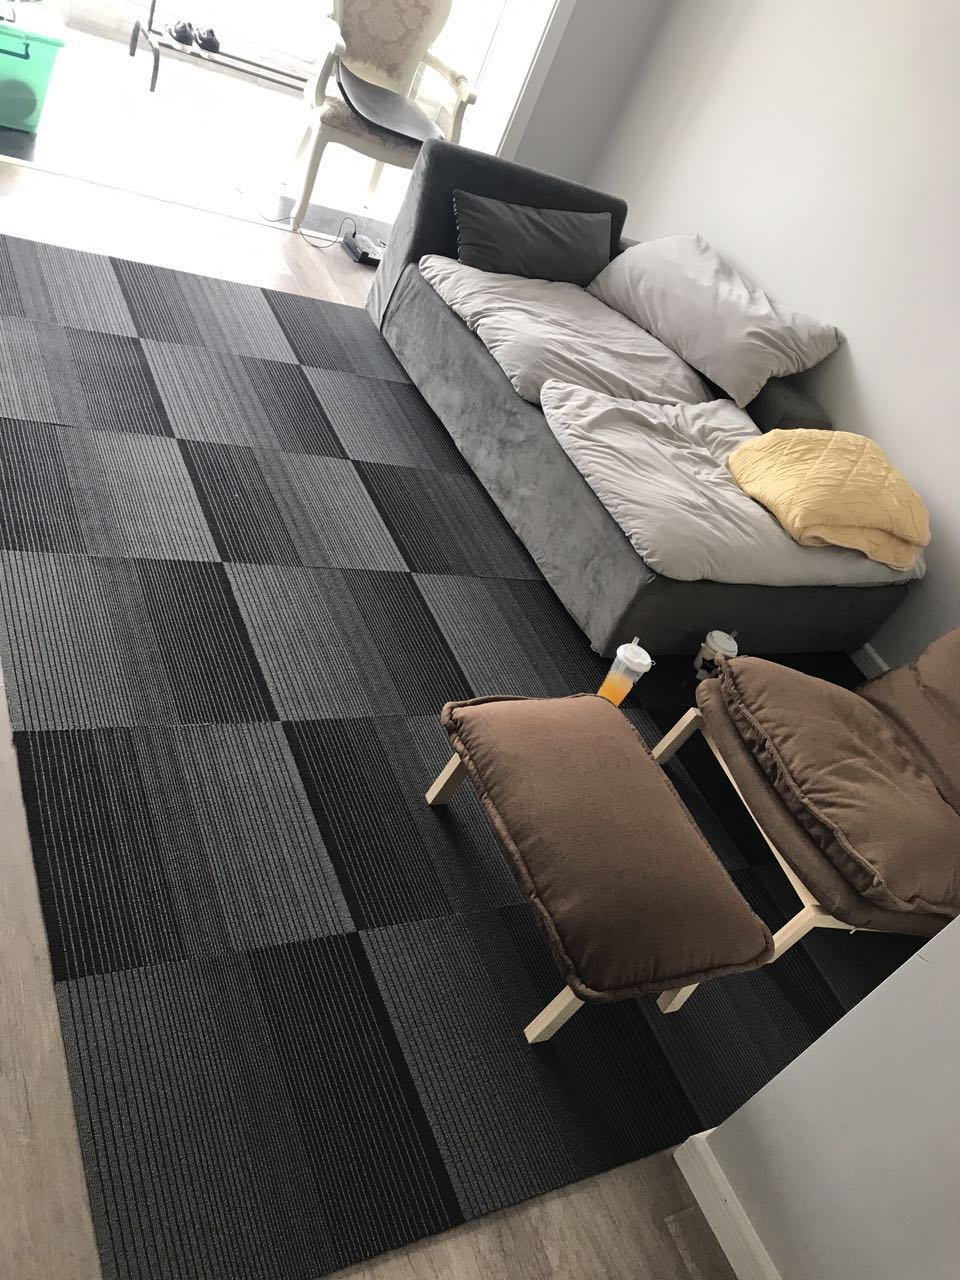 Image of: China Factory Whaolesales Pvc Carpet Tiles Modular Carpet Commercial Hotel Home Office Carpet Tile Floor Carpet China Stripe Carpet And Commercial Carpet Price